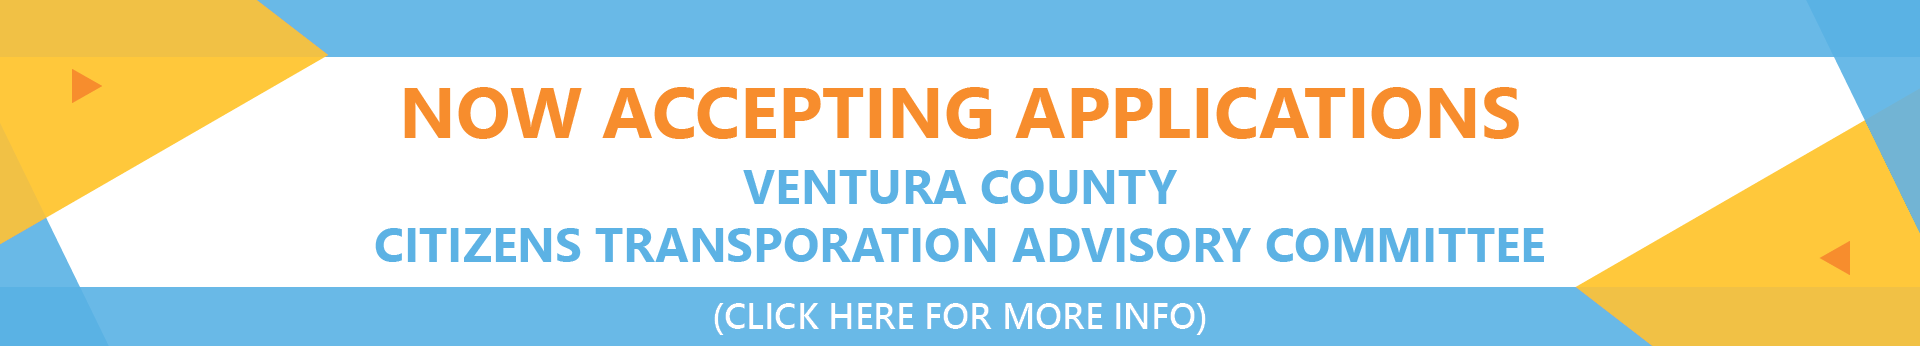 Now accepting applications for Ventura County Citizen's Transportation Advisory Committee. Click here for more info.